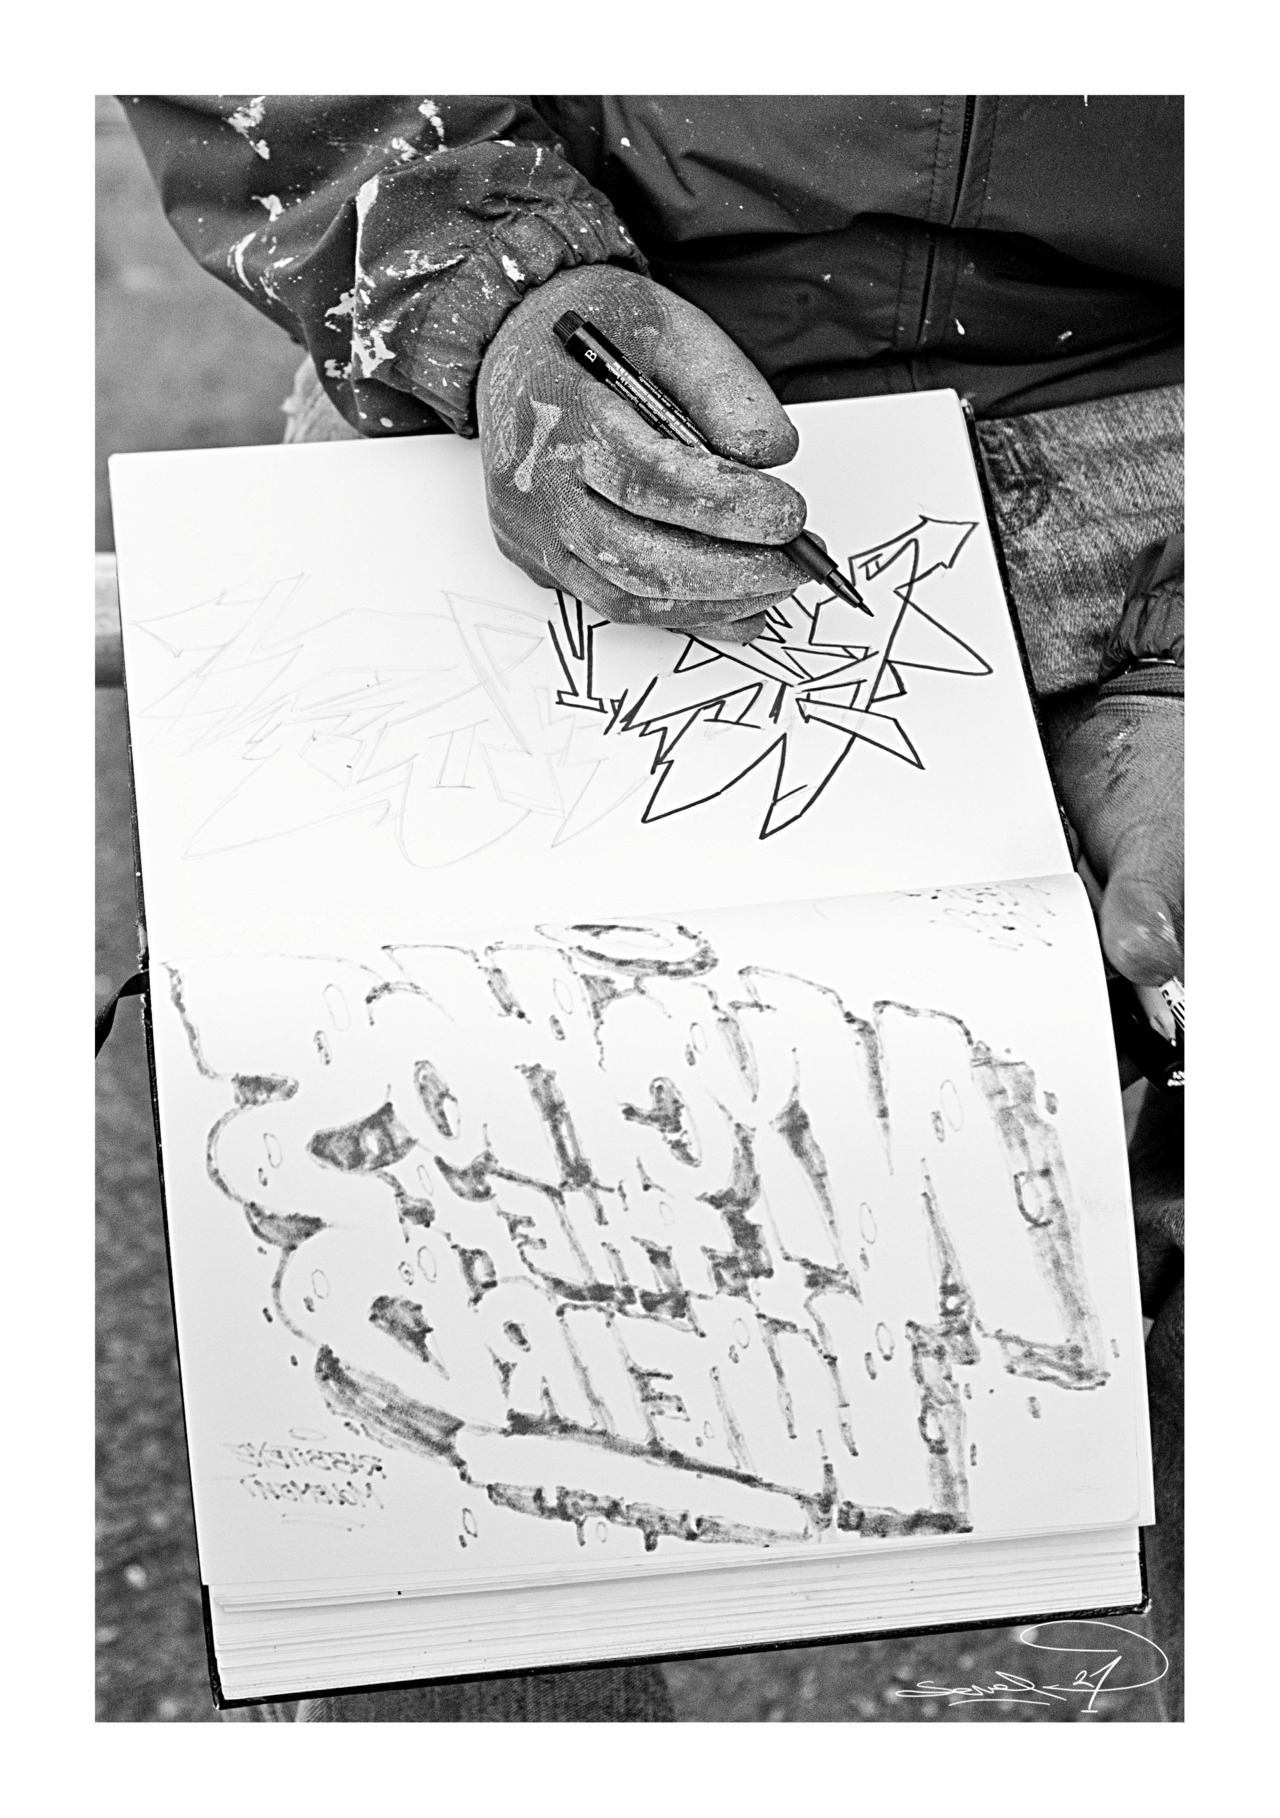 Mr.Achoe/Norway sketching after Nychos The Weird on the reverse page at the All City Jam 2012/Dublin